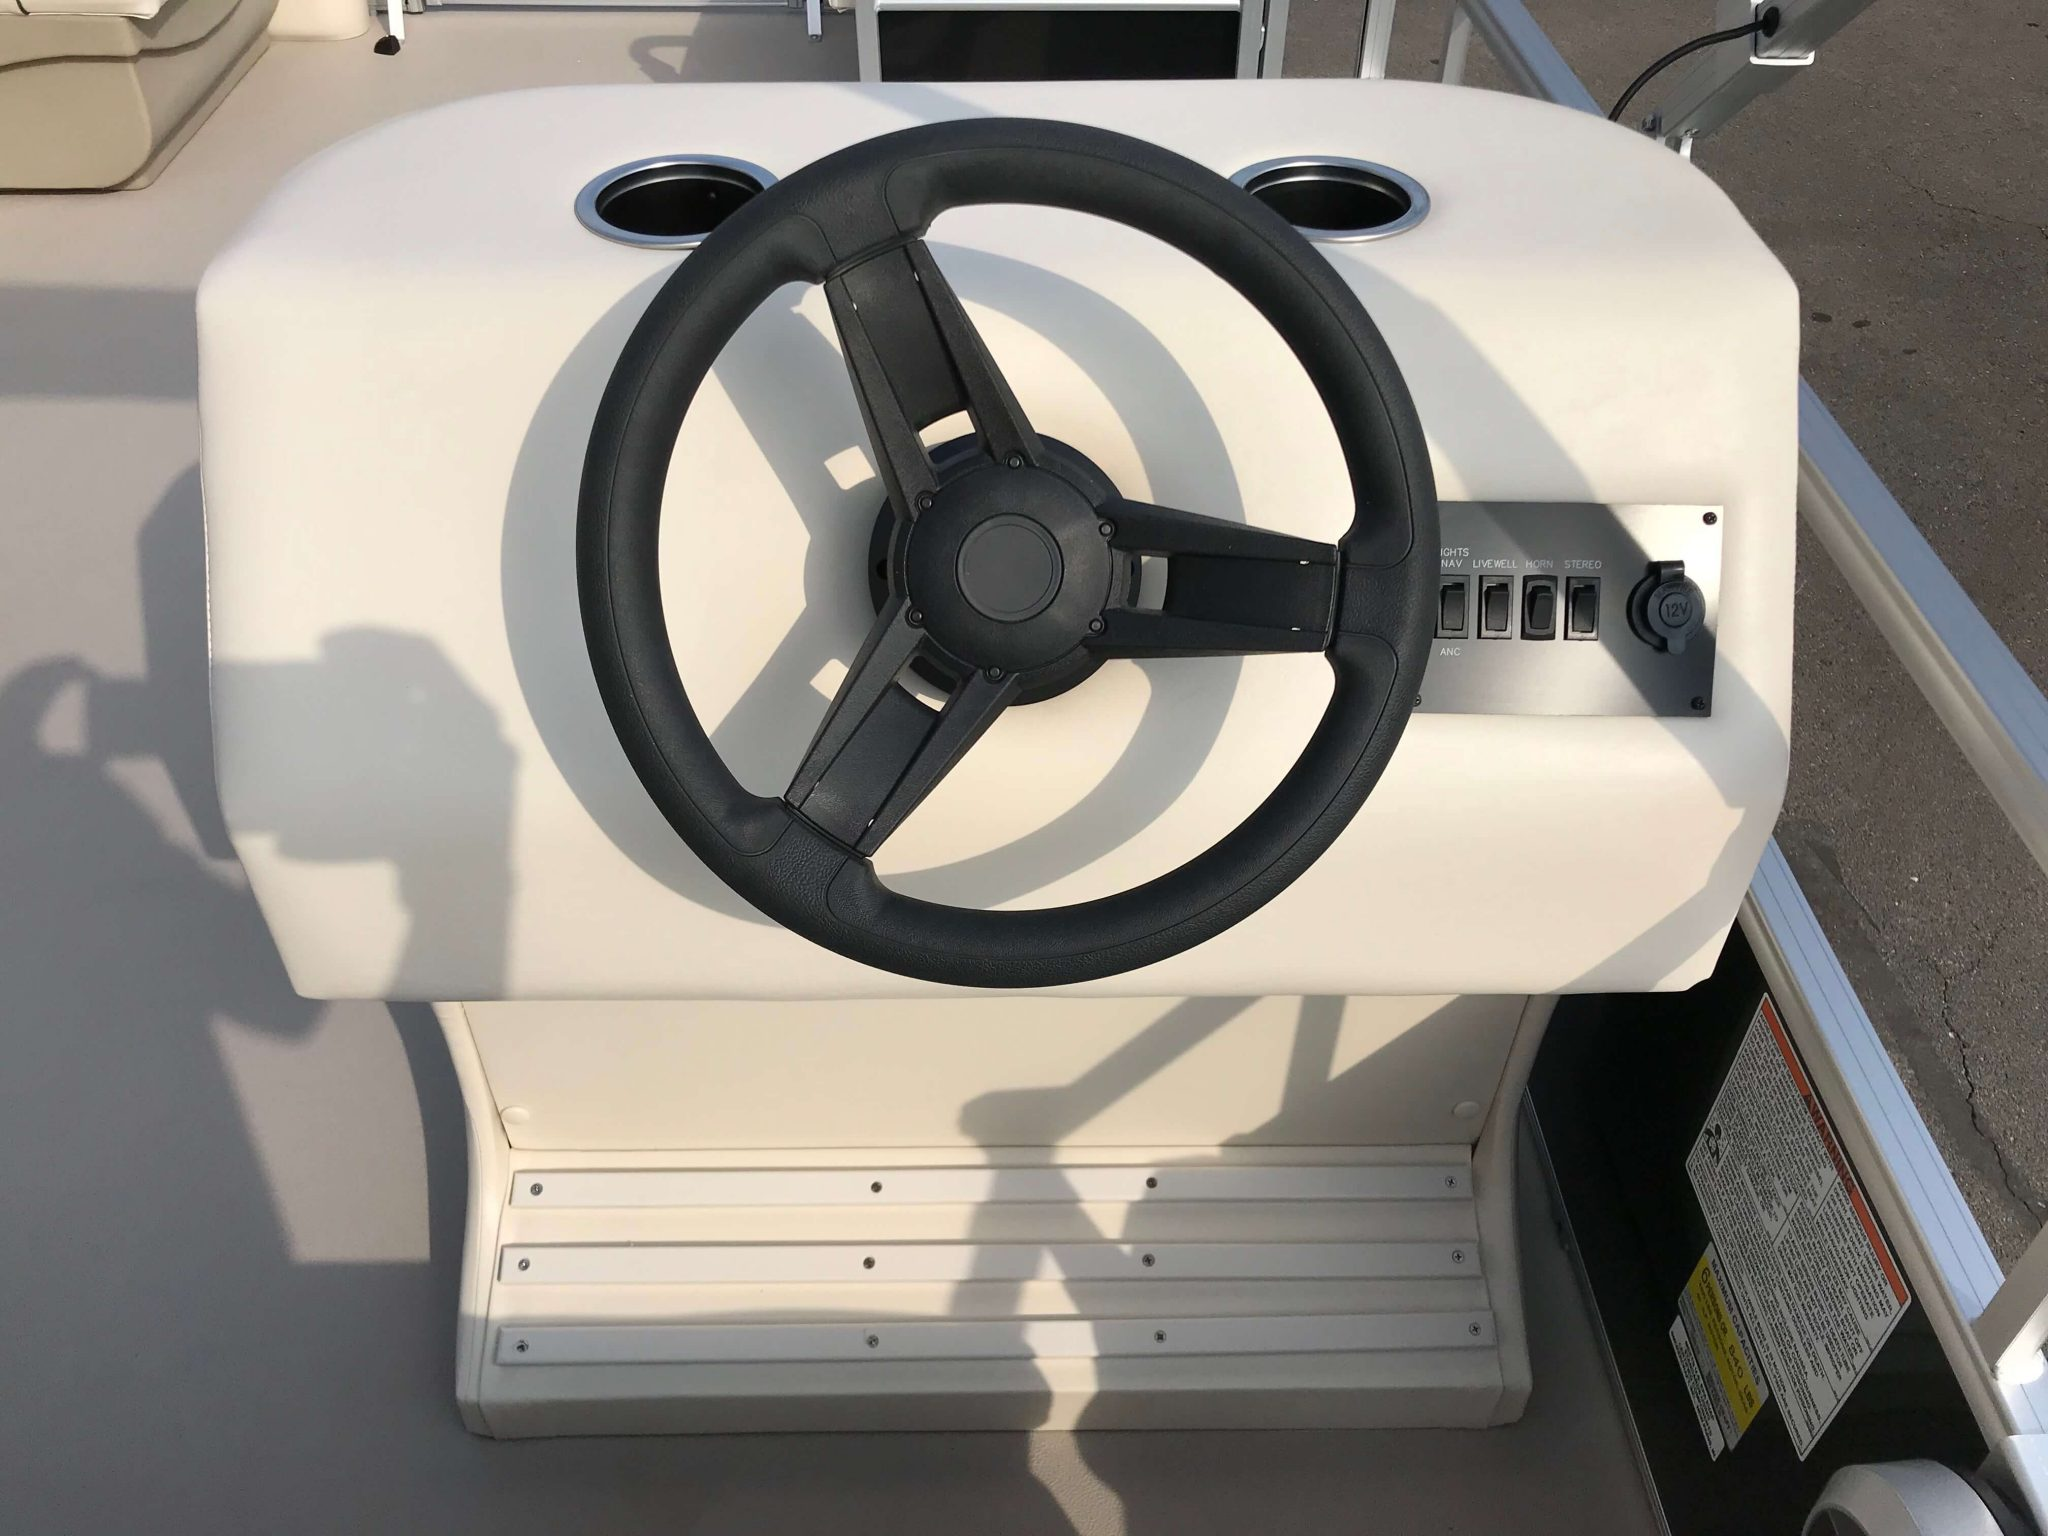 2019 SunChaser Oasis 816 Cruise Seating Helm